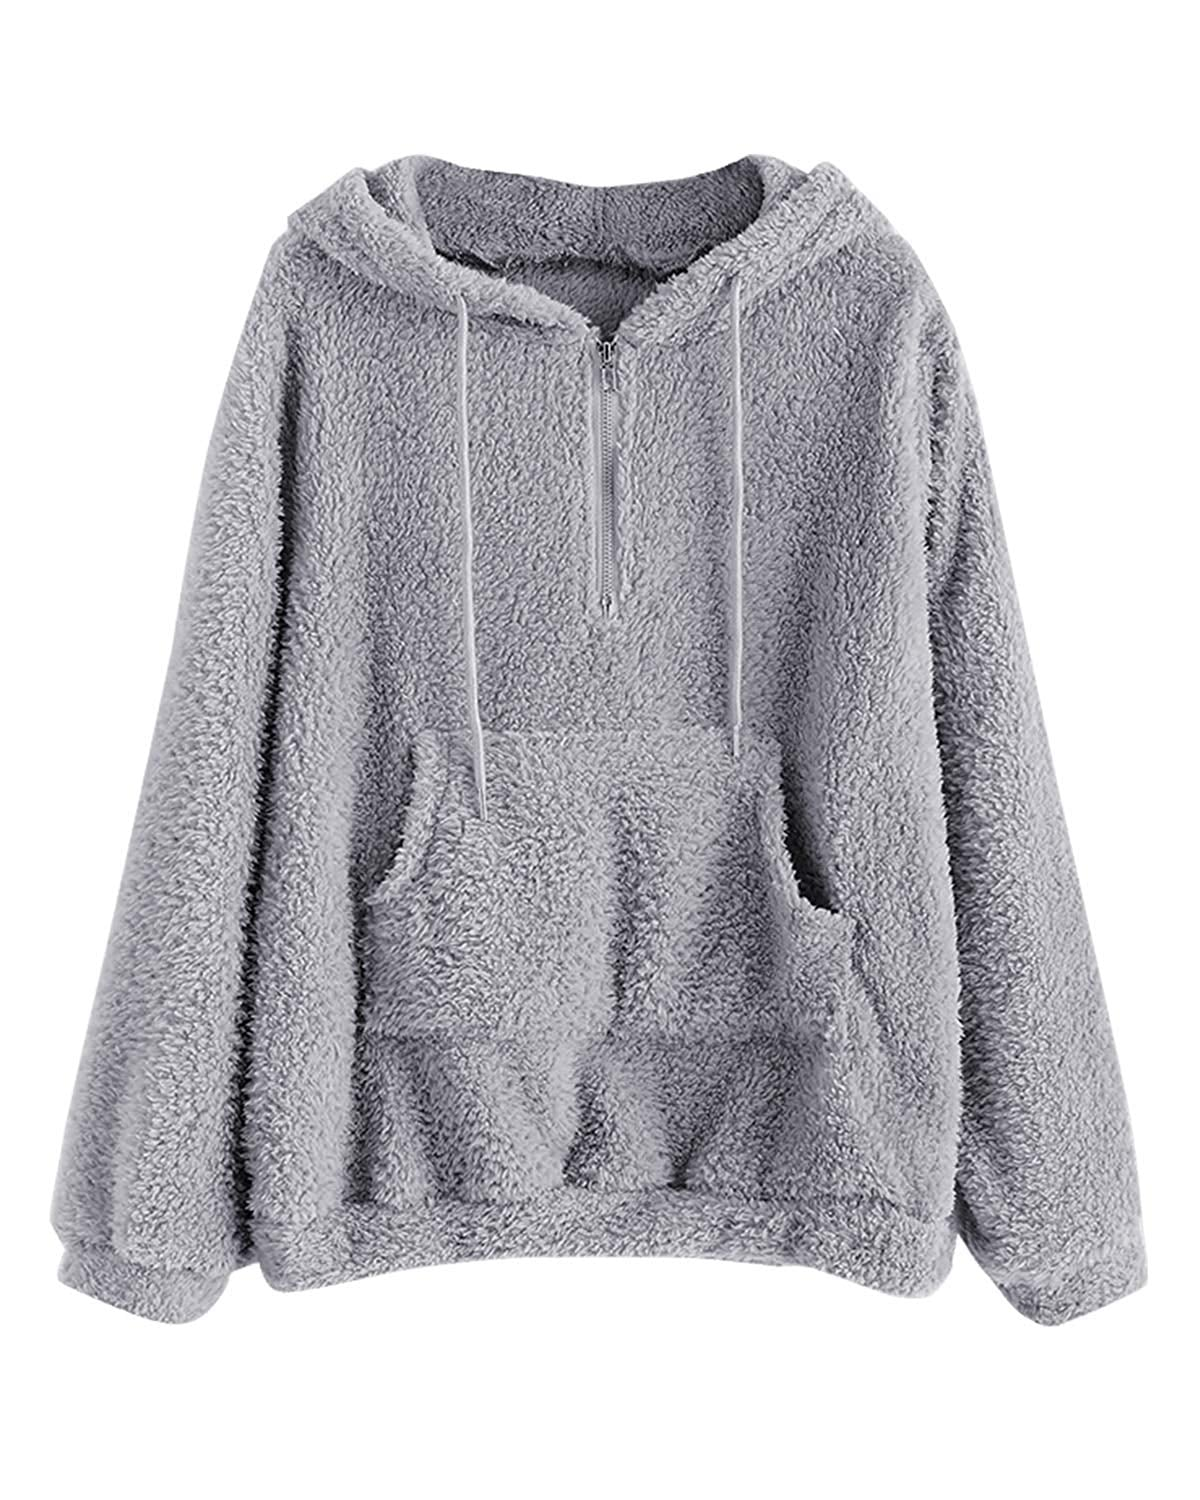 This sweater doesn t cost cash back new mc альфа банк условия